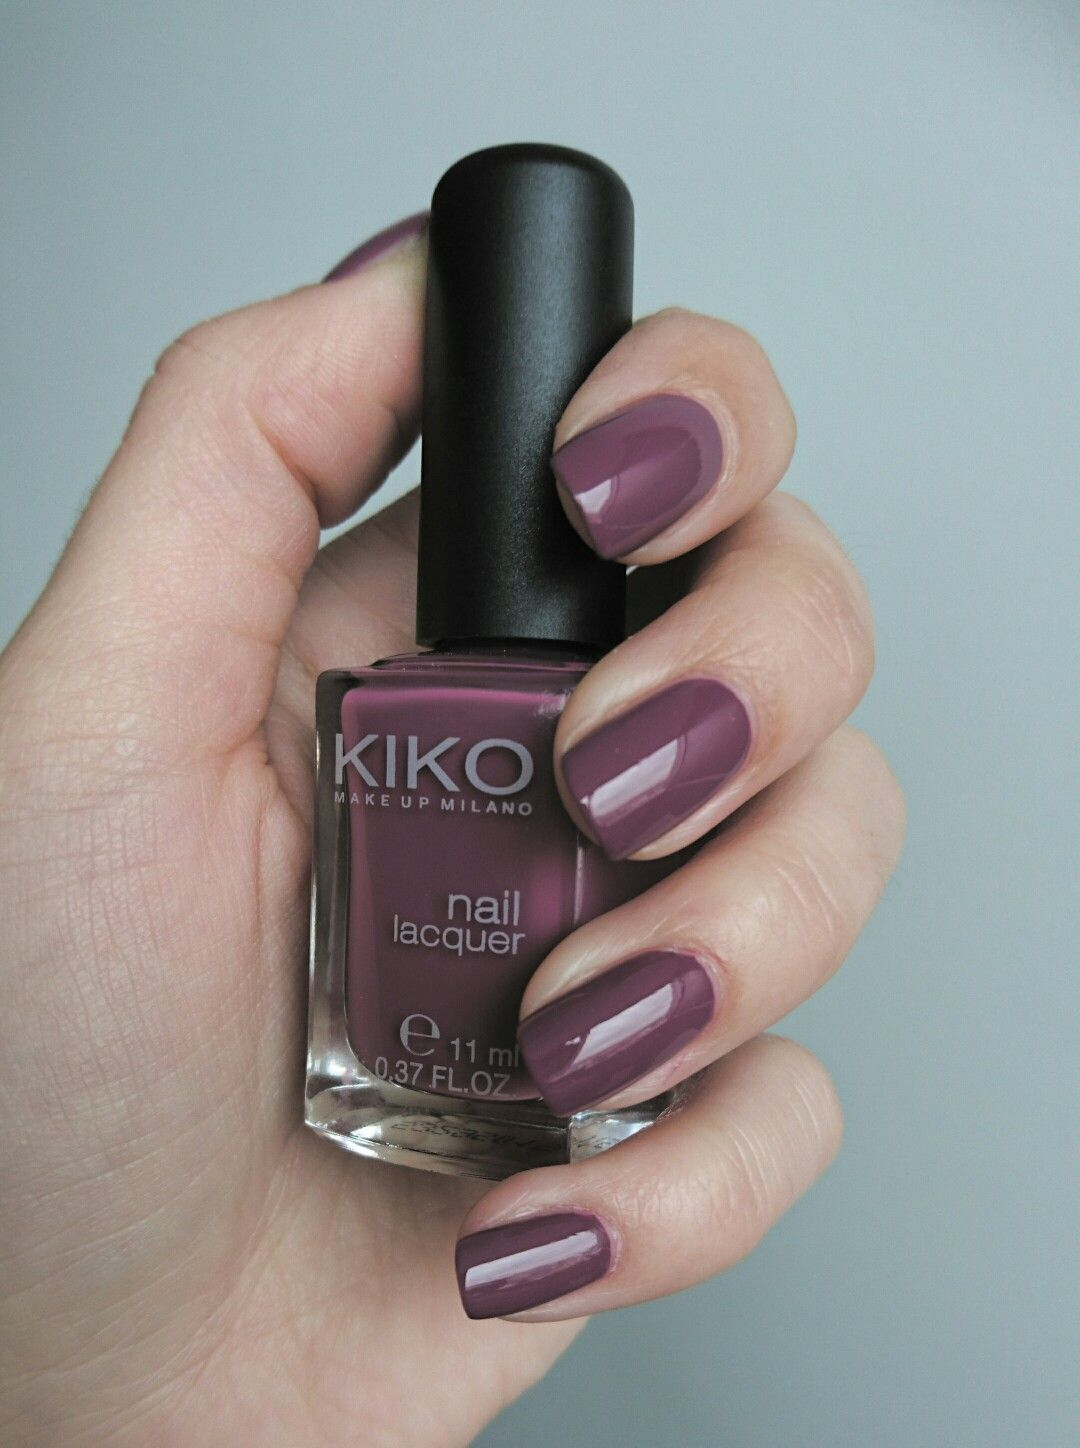 kiko #KikoMilano #Nailpolish 317 Dark Antique Pink | Nails ...